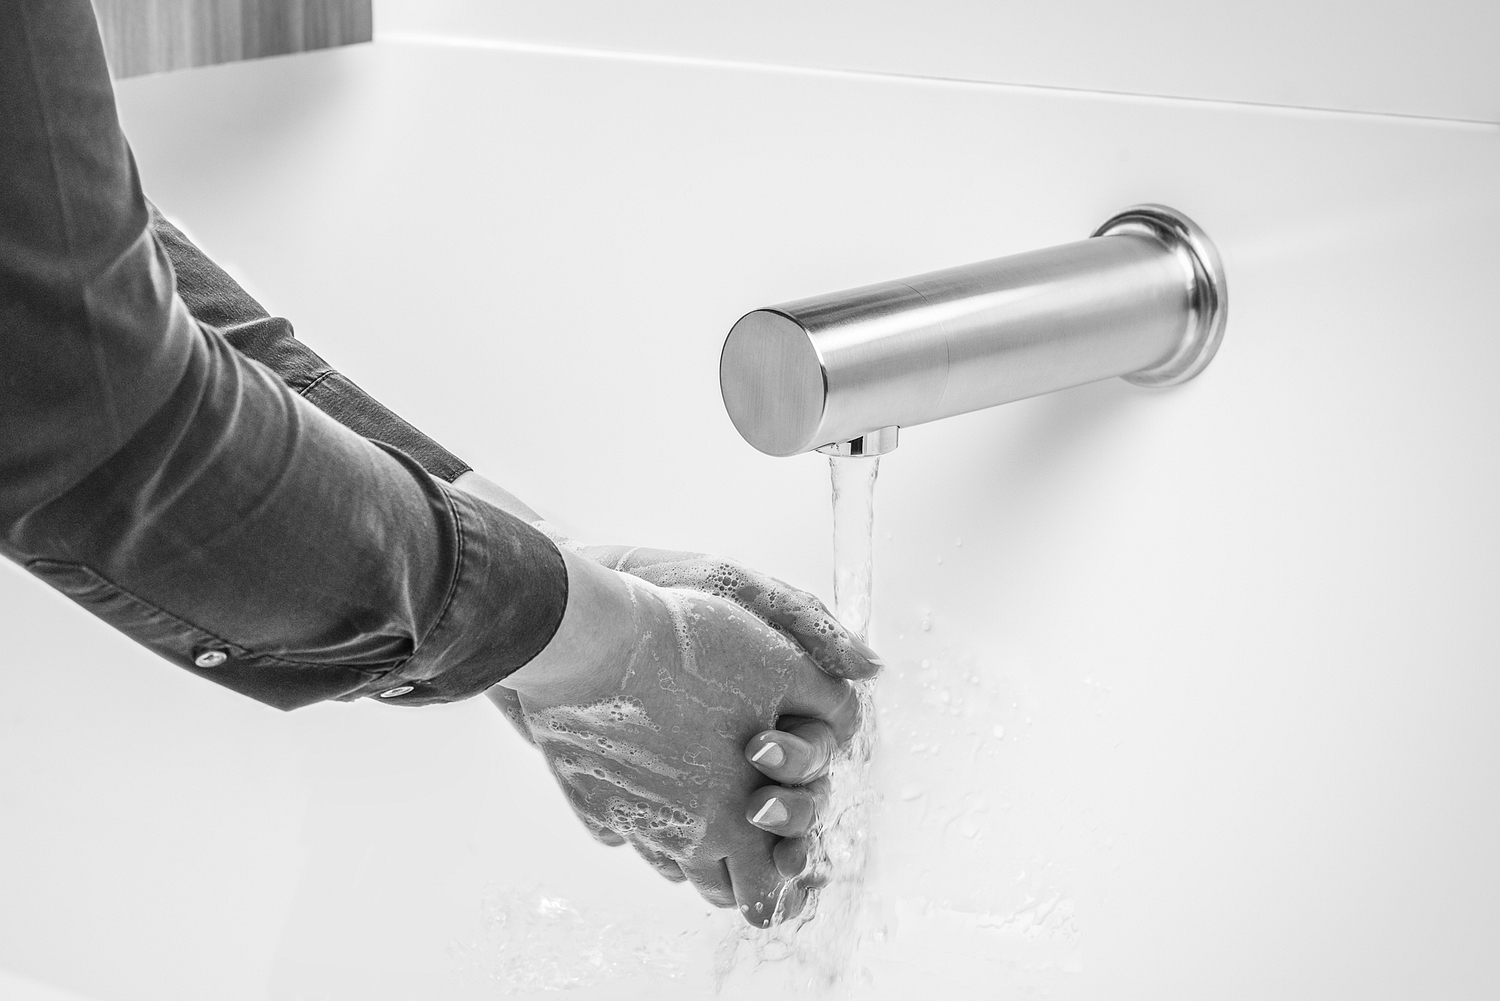 Hand washing detail, monochrome